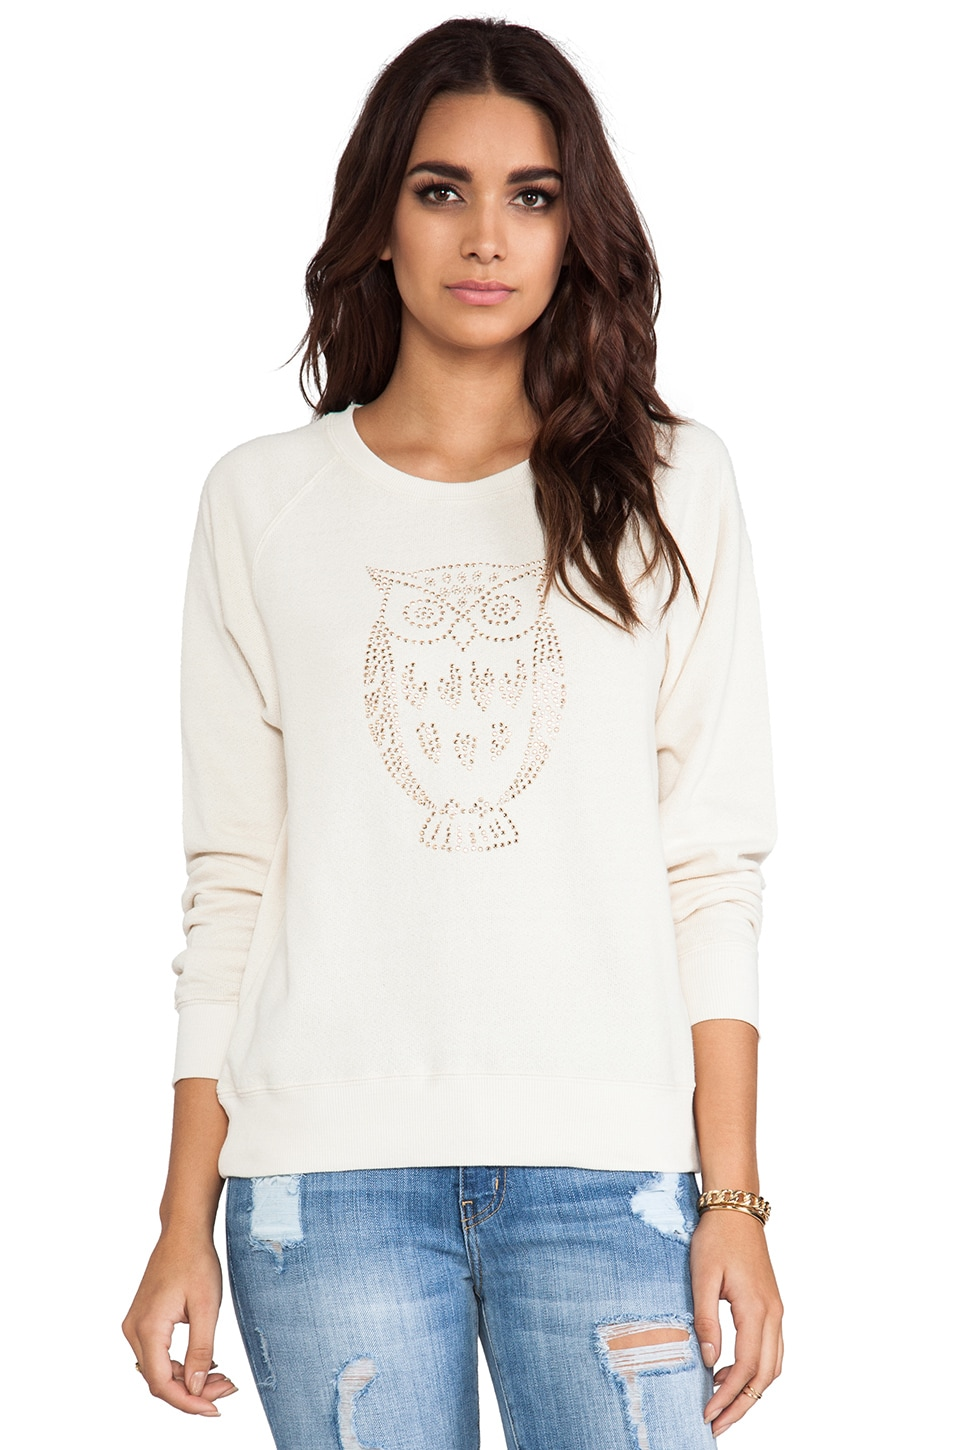 C&C California Heat Seal Crepe French Terry Embellished Sweatshirt in Vanilla